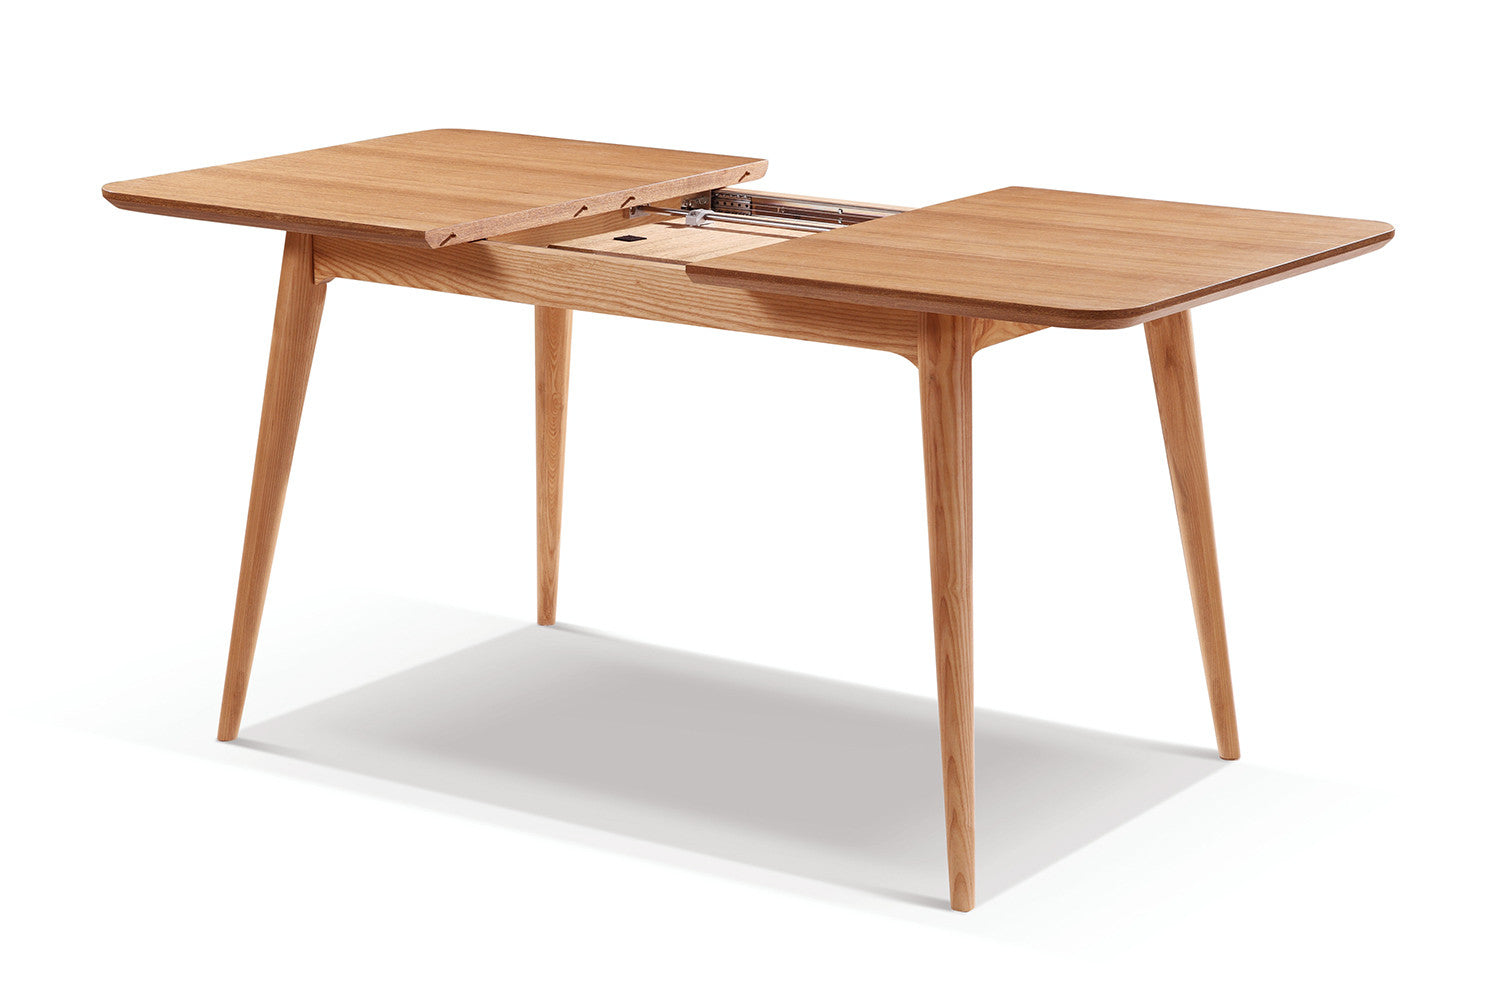 Table salle a manger extensible en bois maison design for Table de salle a manger kreabel